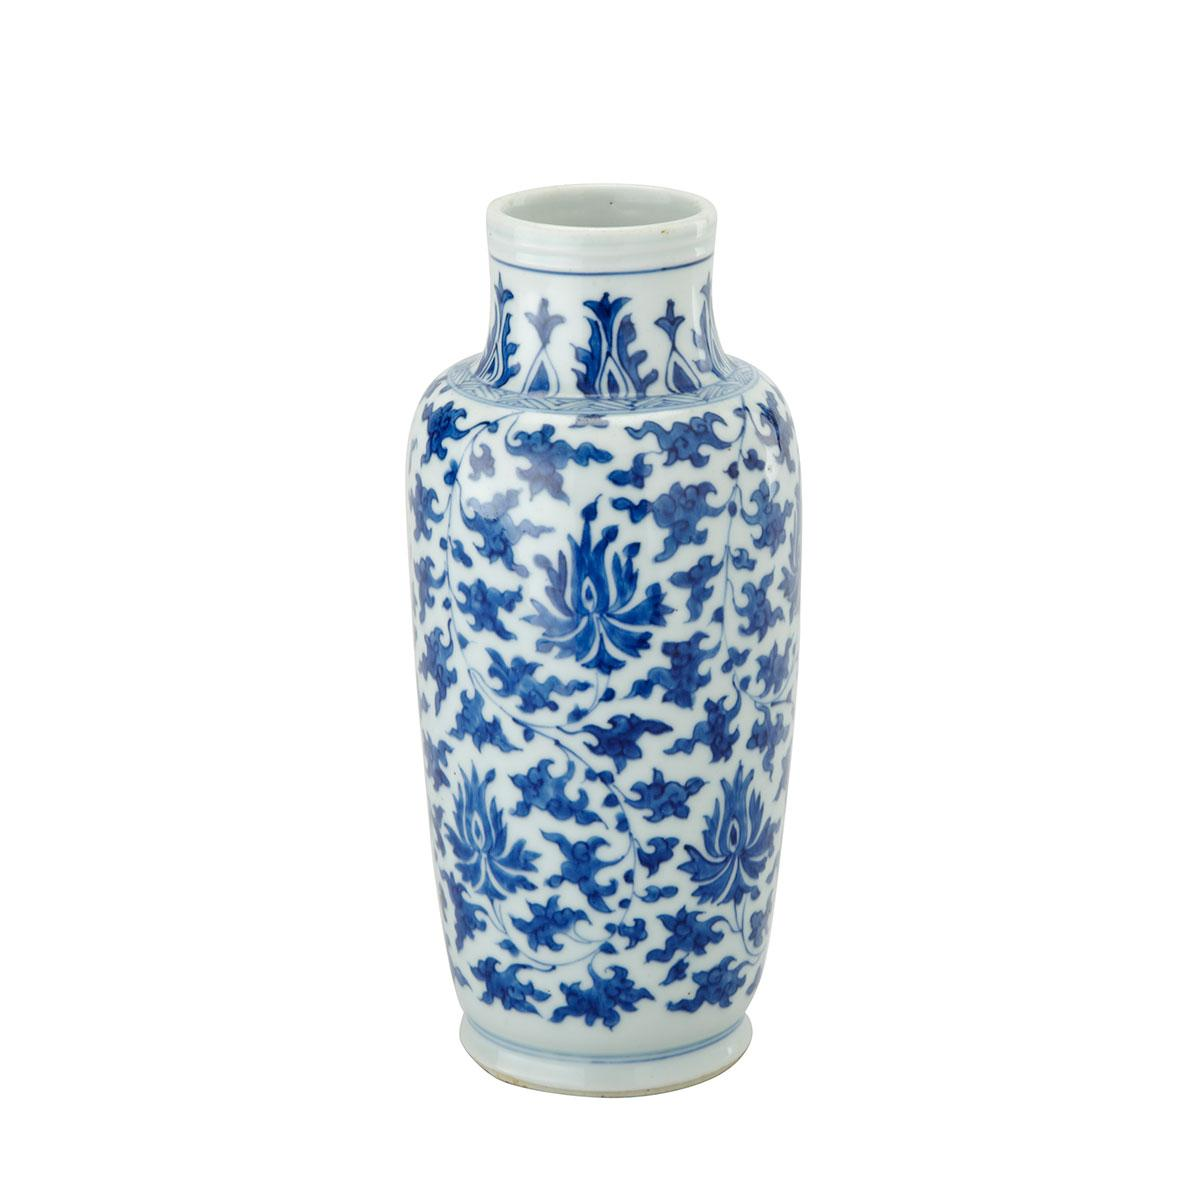 Blue and White Lotus Rouleau Vase, 18th Century